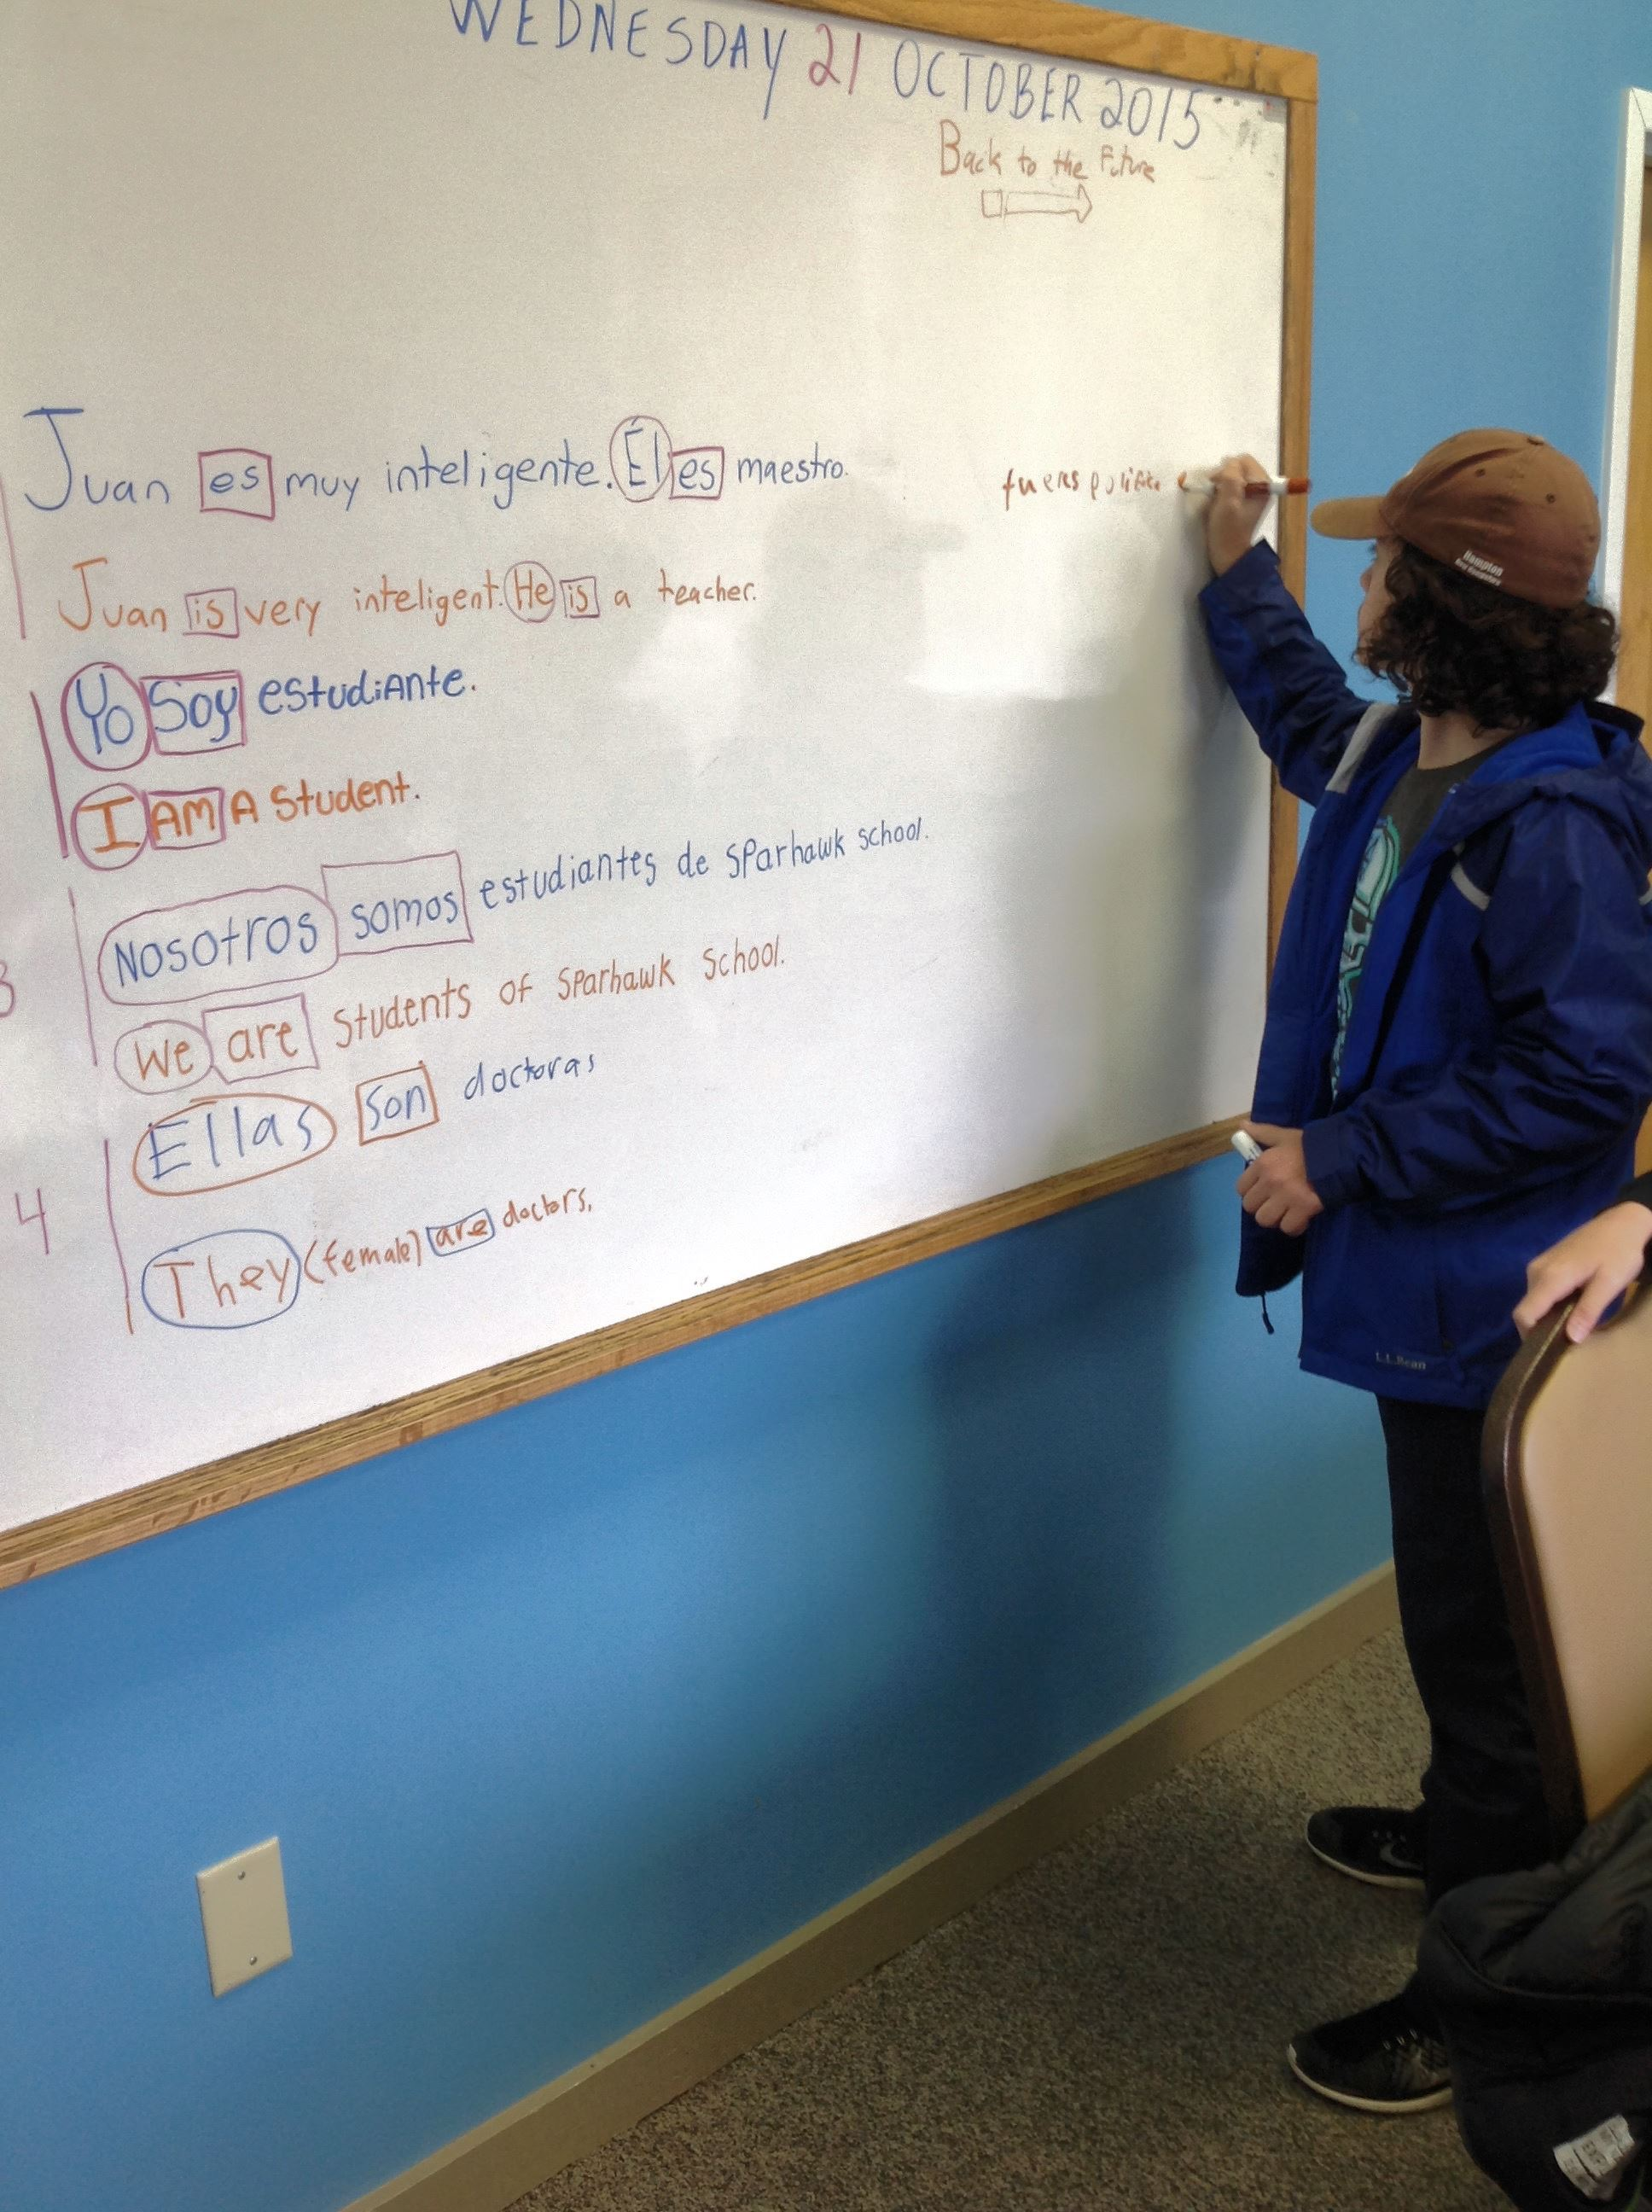 Sparhawk middle school student standing at a white board completing a lesson